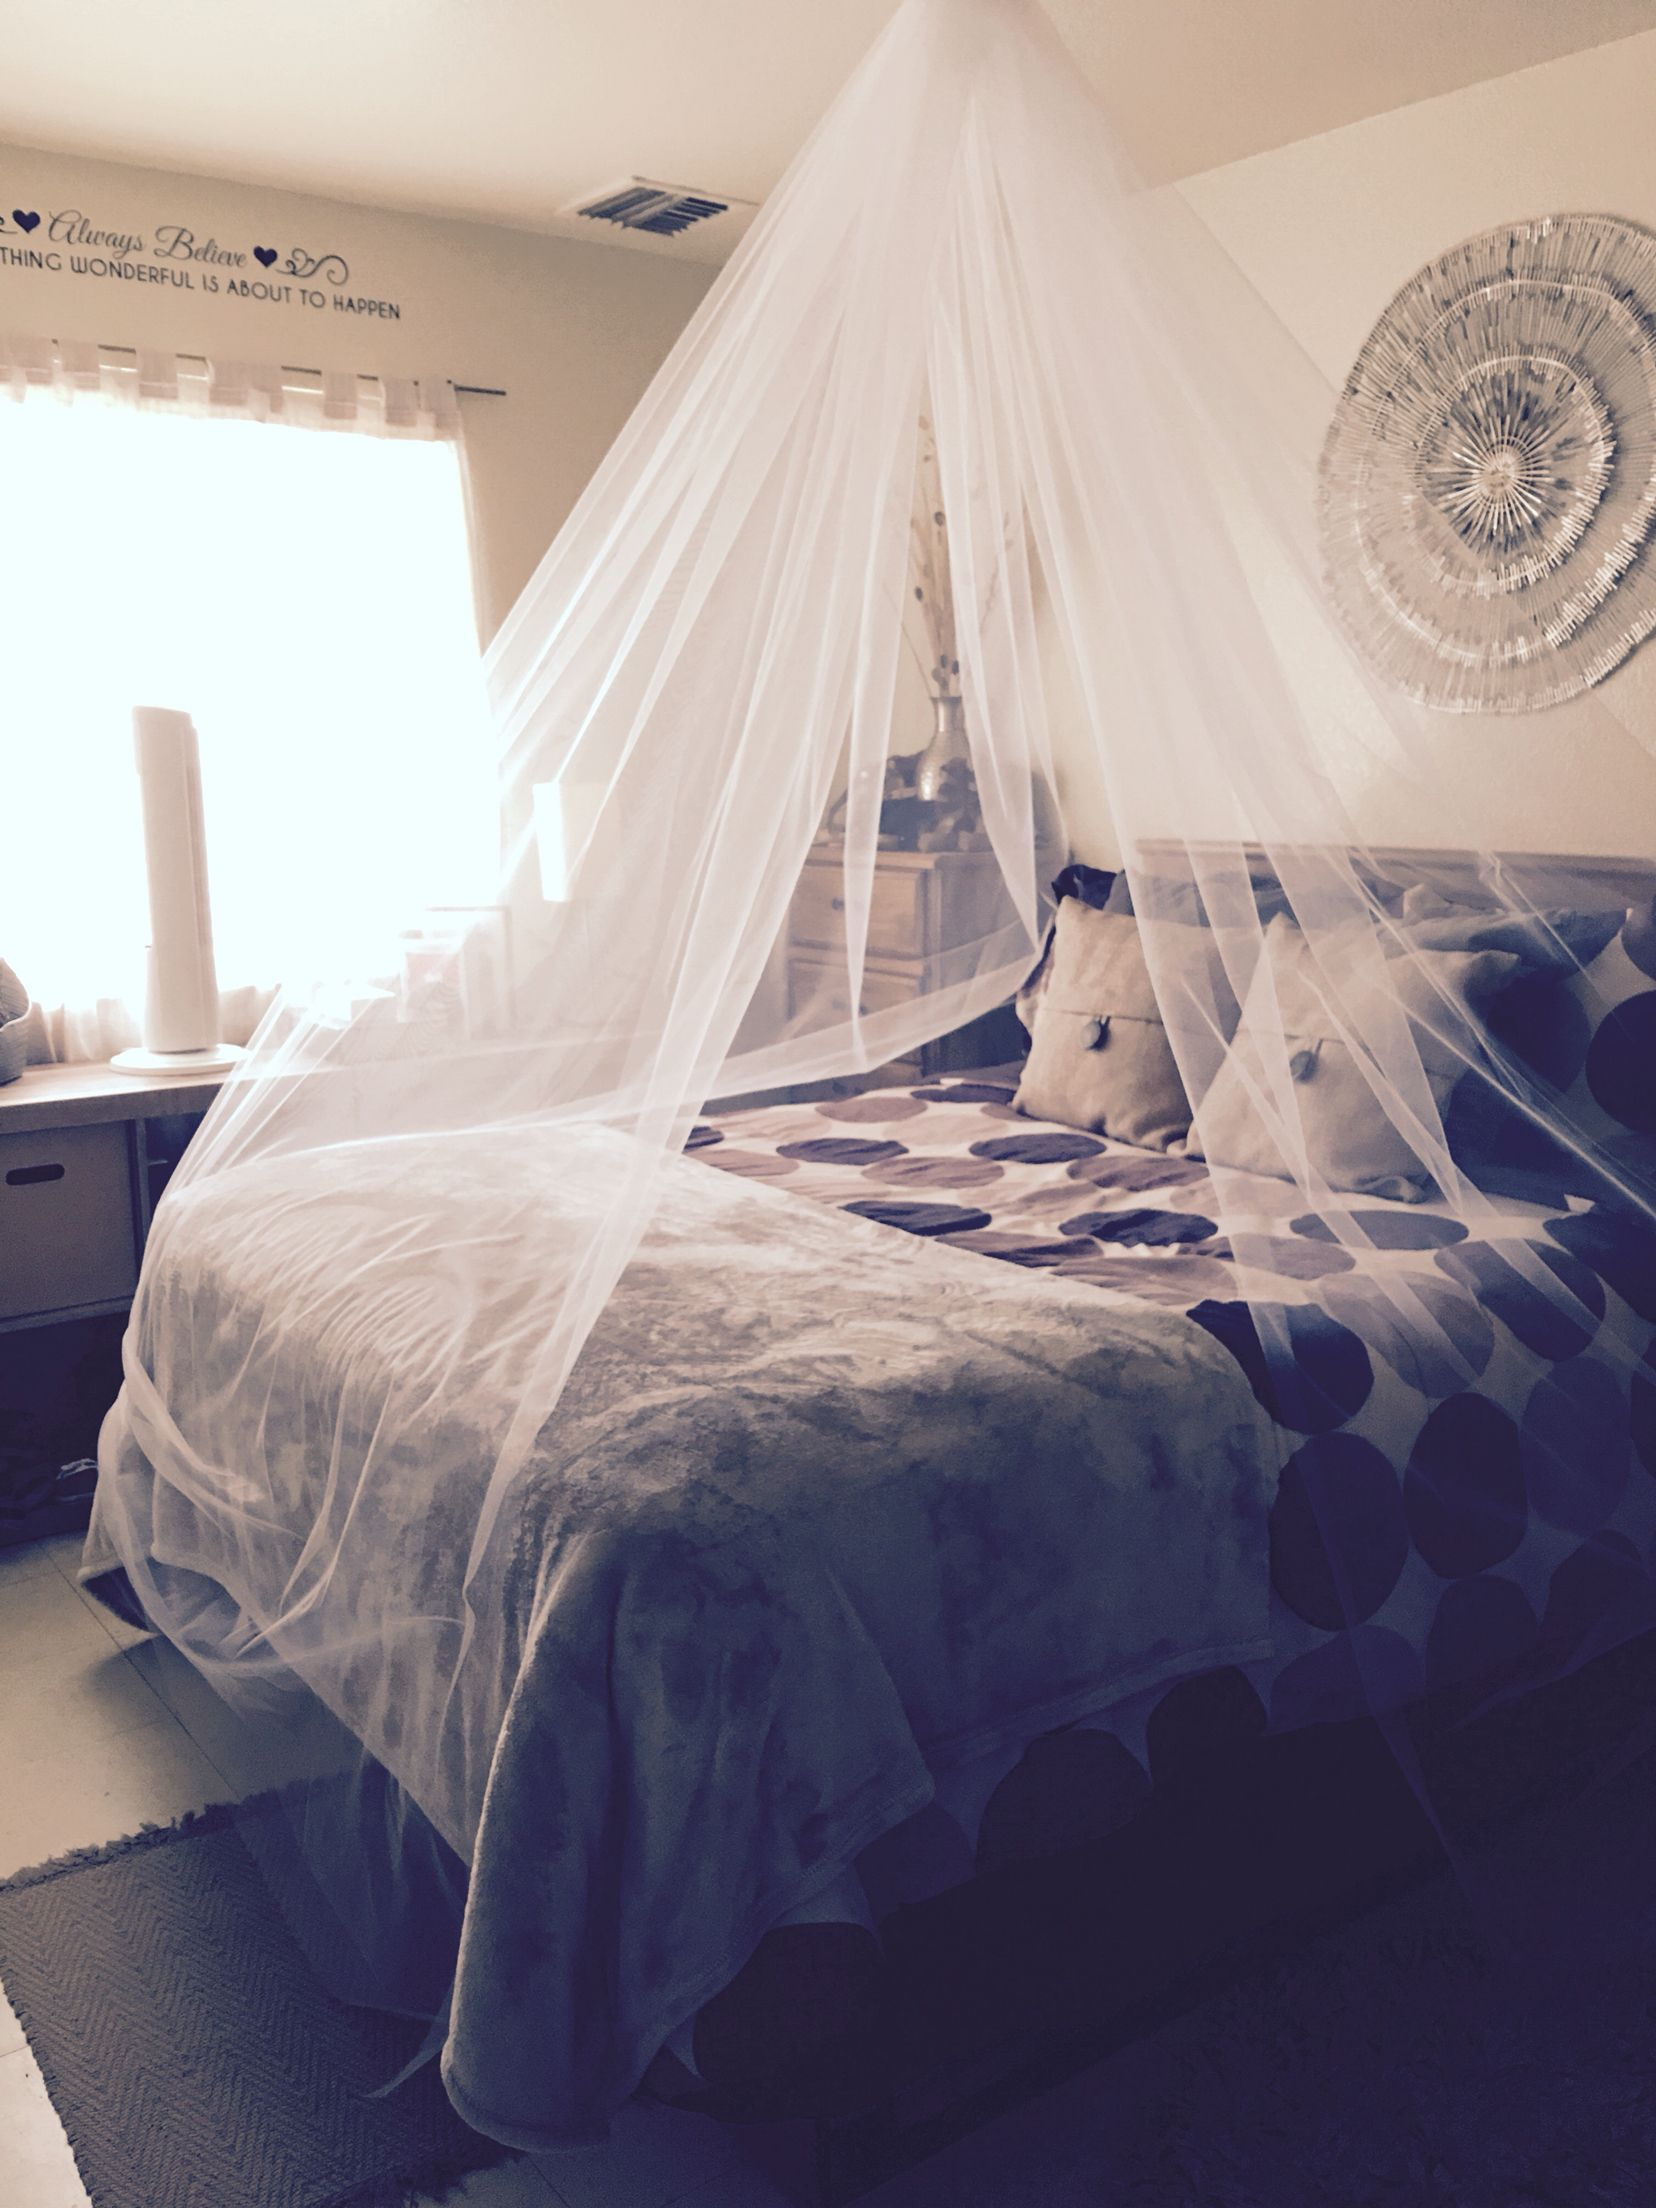 Mosquito Nets Makes Any Bedroom Look Great! I Made This